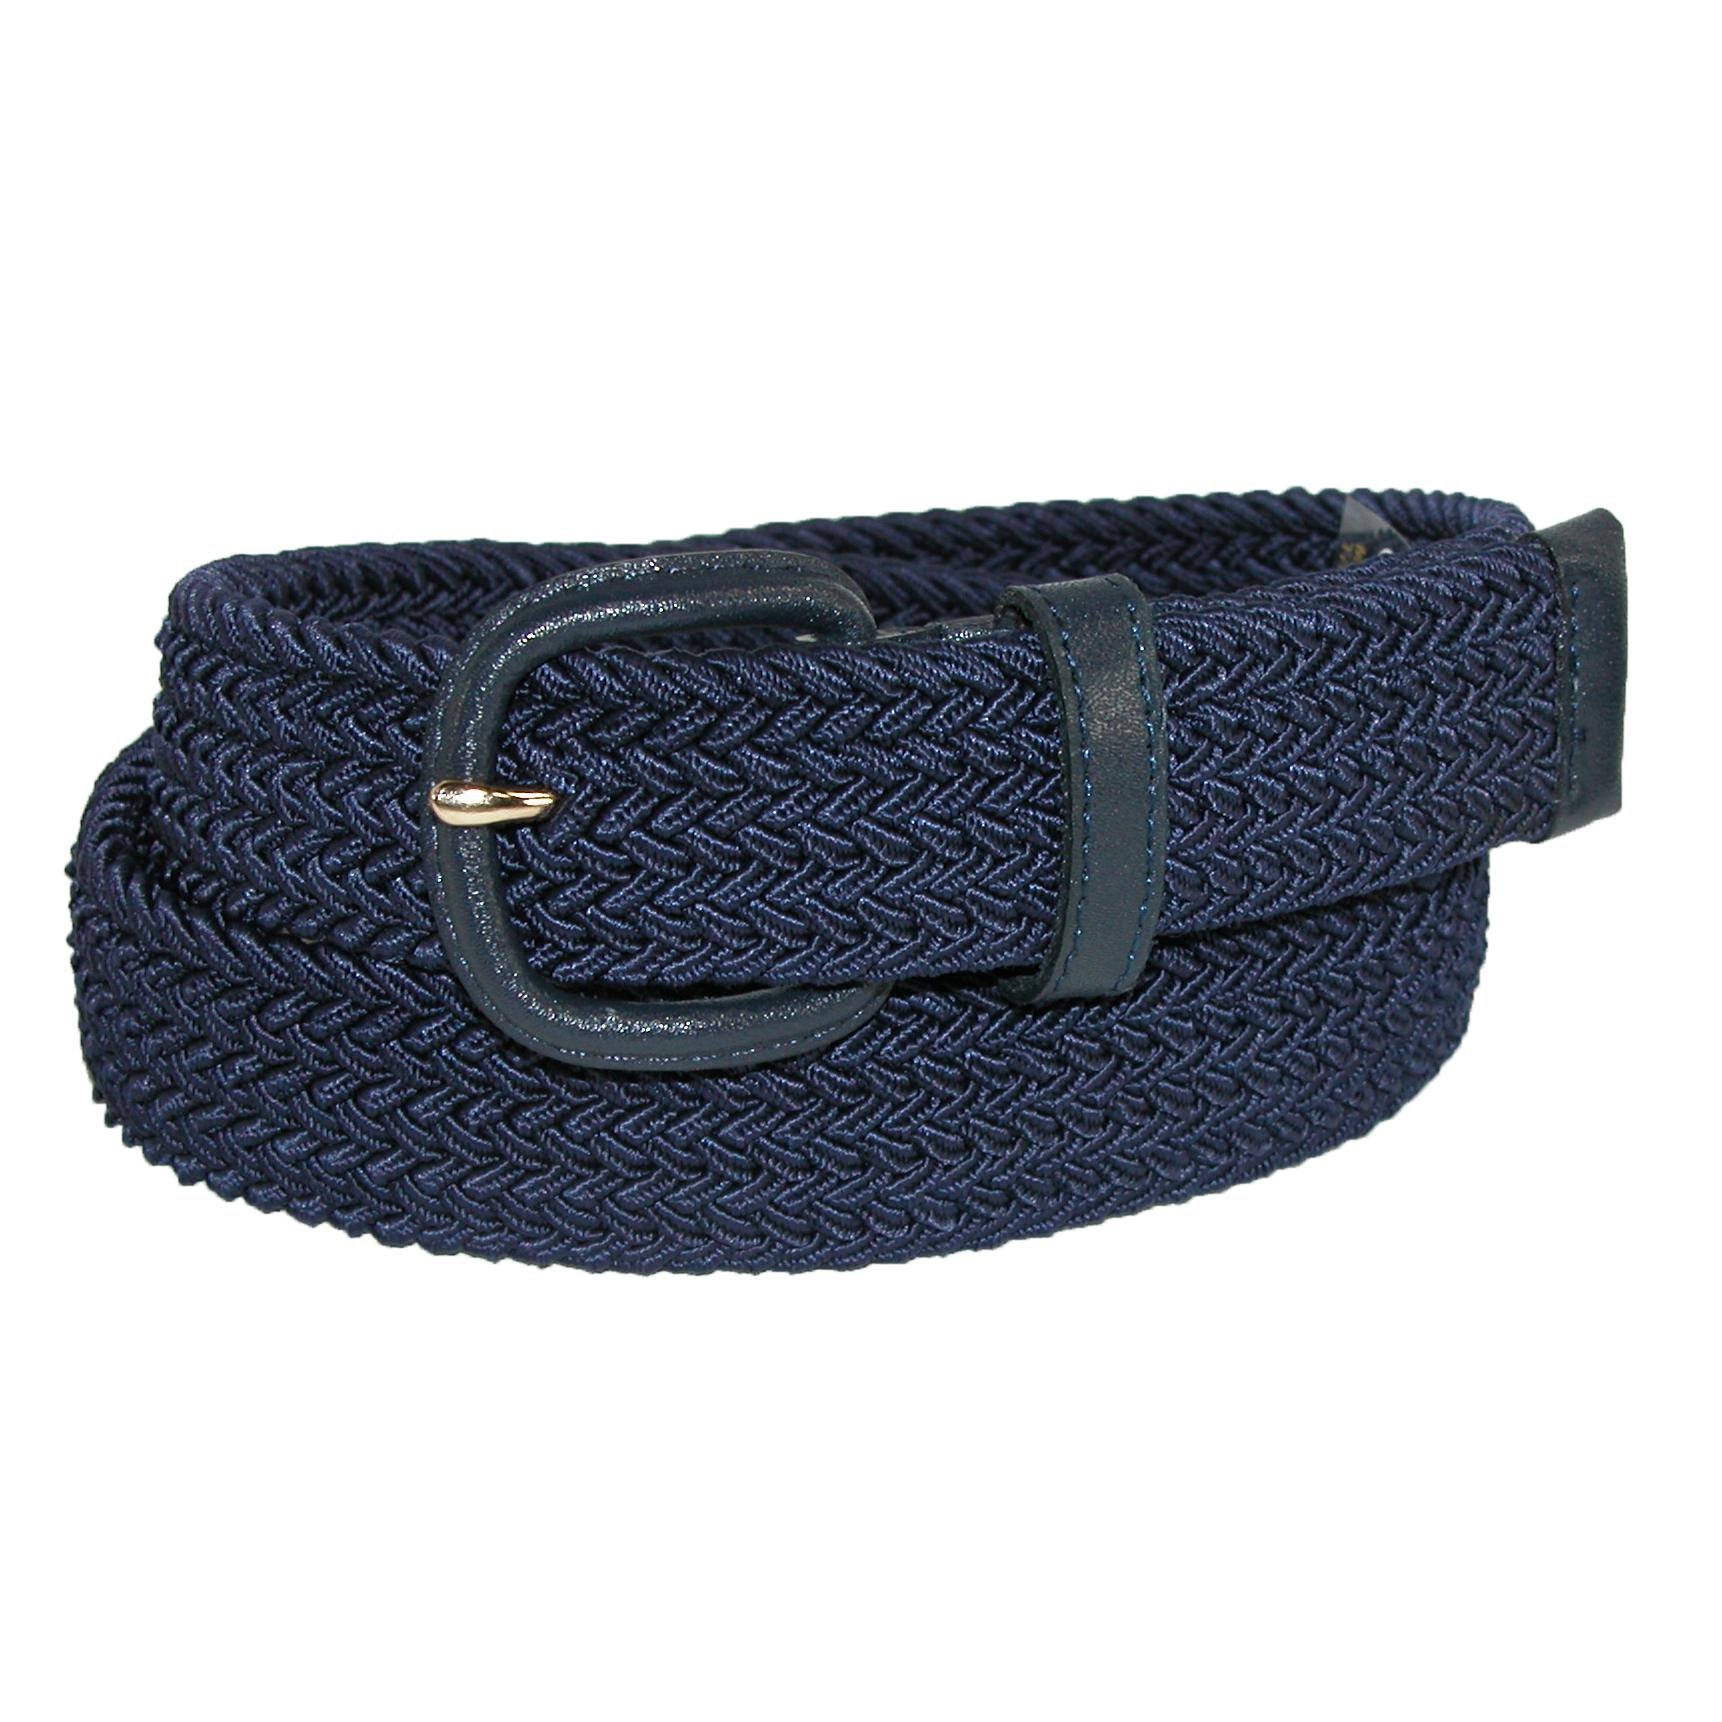 Aquarius_Men's_Elastic_Stretch_Belt_with_Covered_Buckle_(Big_&_Tall